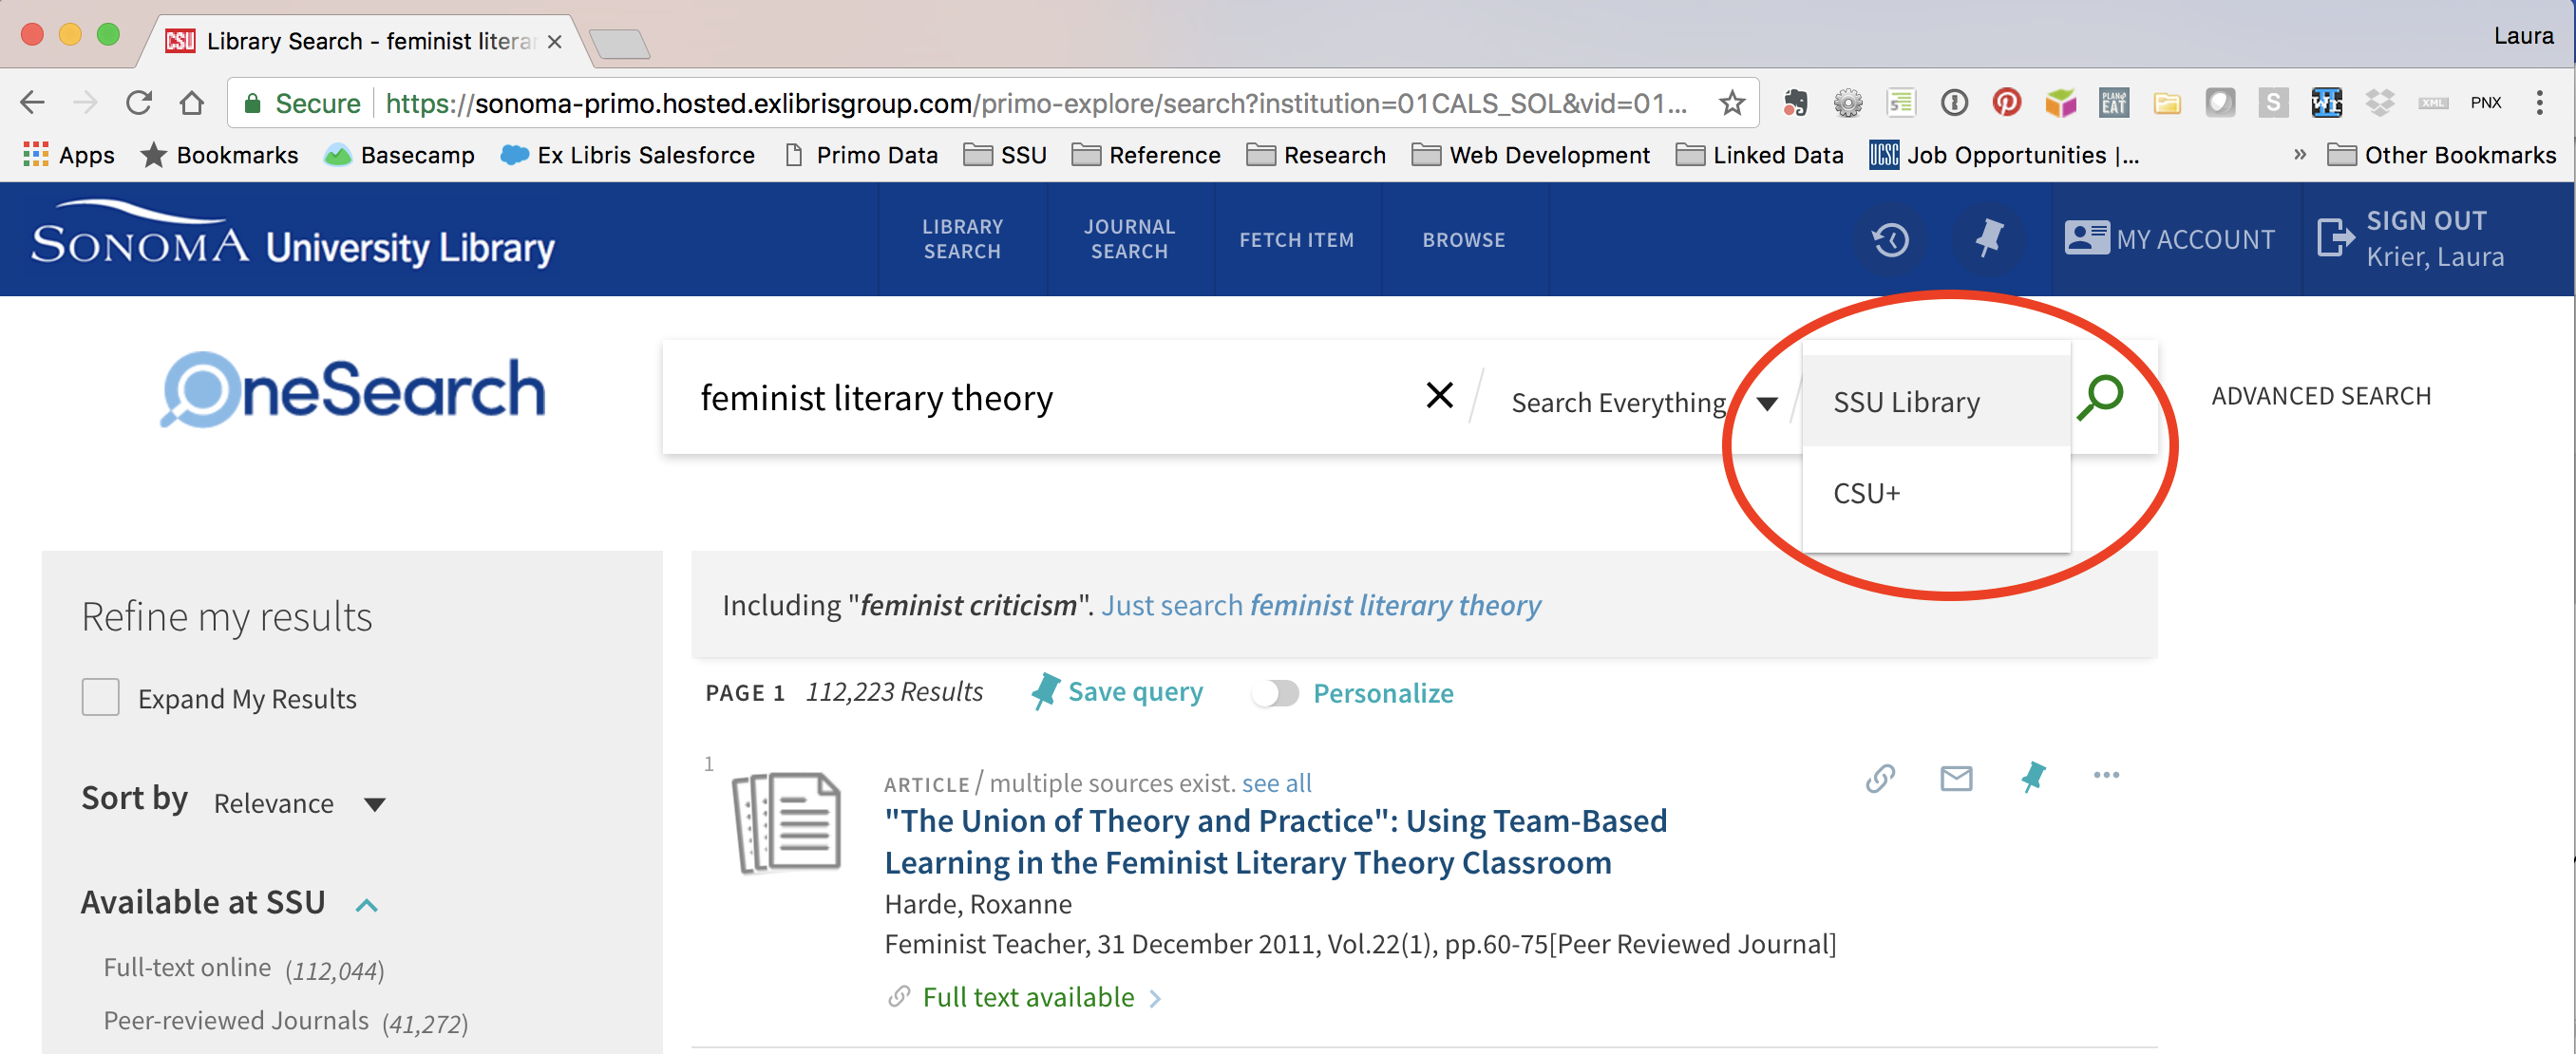 The drop down menu at the far right end of the search bar allows you to choose to search either SSU Library or CSU+.